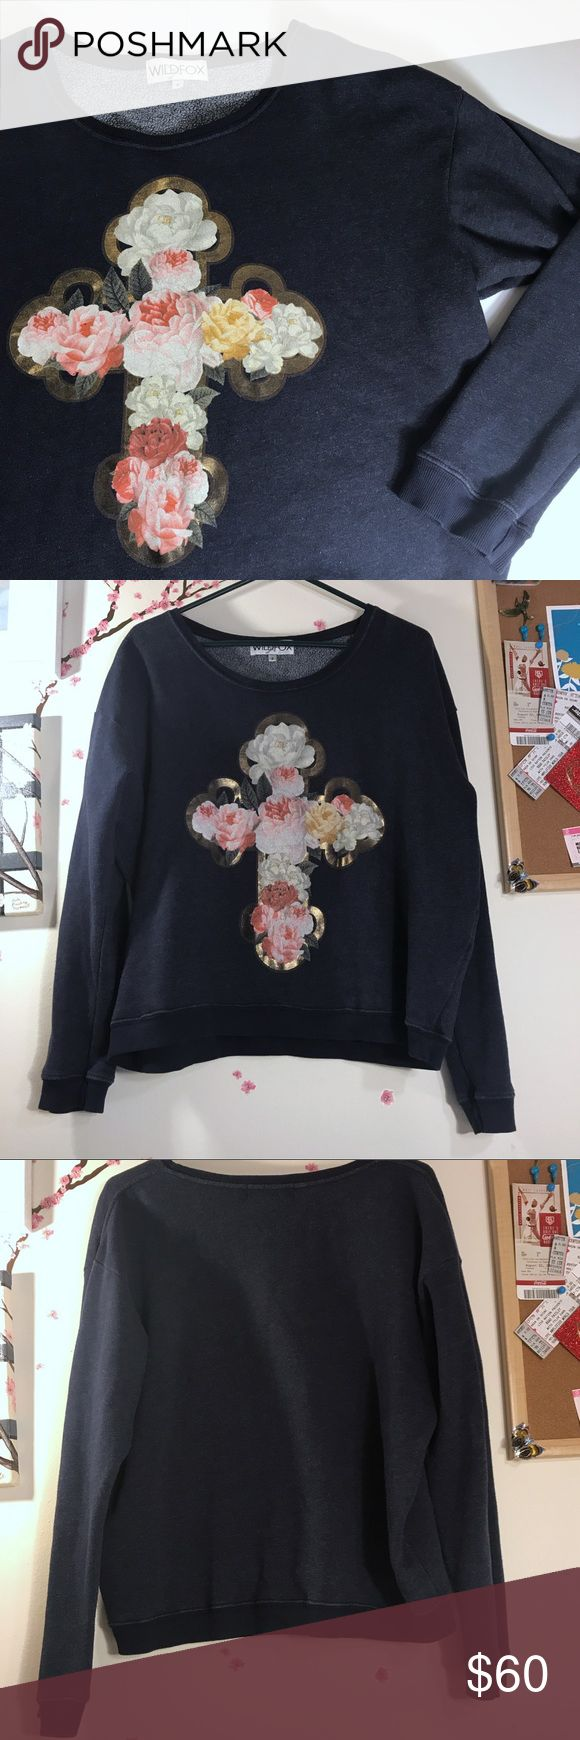 Wildfox Navy Jumper Floral Gold Cross Stay cozy in this fleecy oversized Wildfox sweater! Intentionally faded and pilled fabric. Features a beautiful Floral Print in the confines of a gold cross on a navy background. Writing on tag. 70% cotton, 30% polyester. Size small. Pre-owned.   24 in flat bust 23 in shoulder to hem 20 in arm length from pit Measurements are approximate; please allow for human error!  Smoke-free home / No trades / Priced for offers Wildfox Sweaters Crew & Scoop Necks